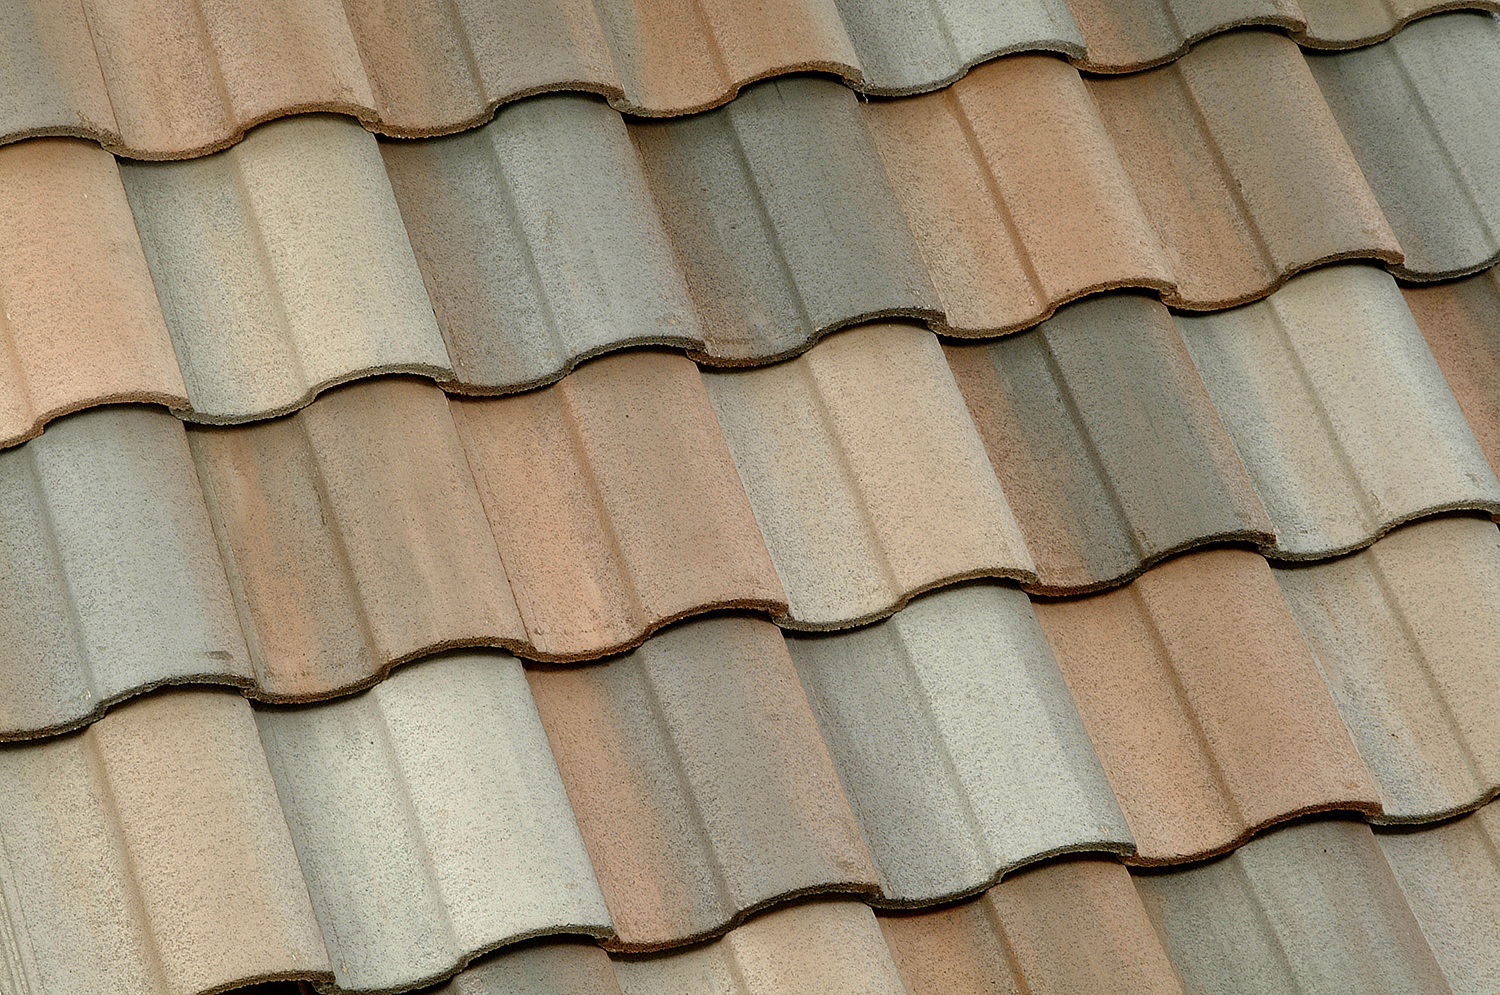 Home roofing contractors for Waste material images